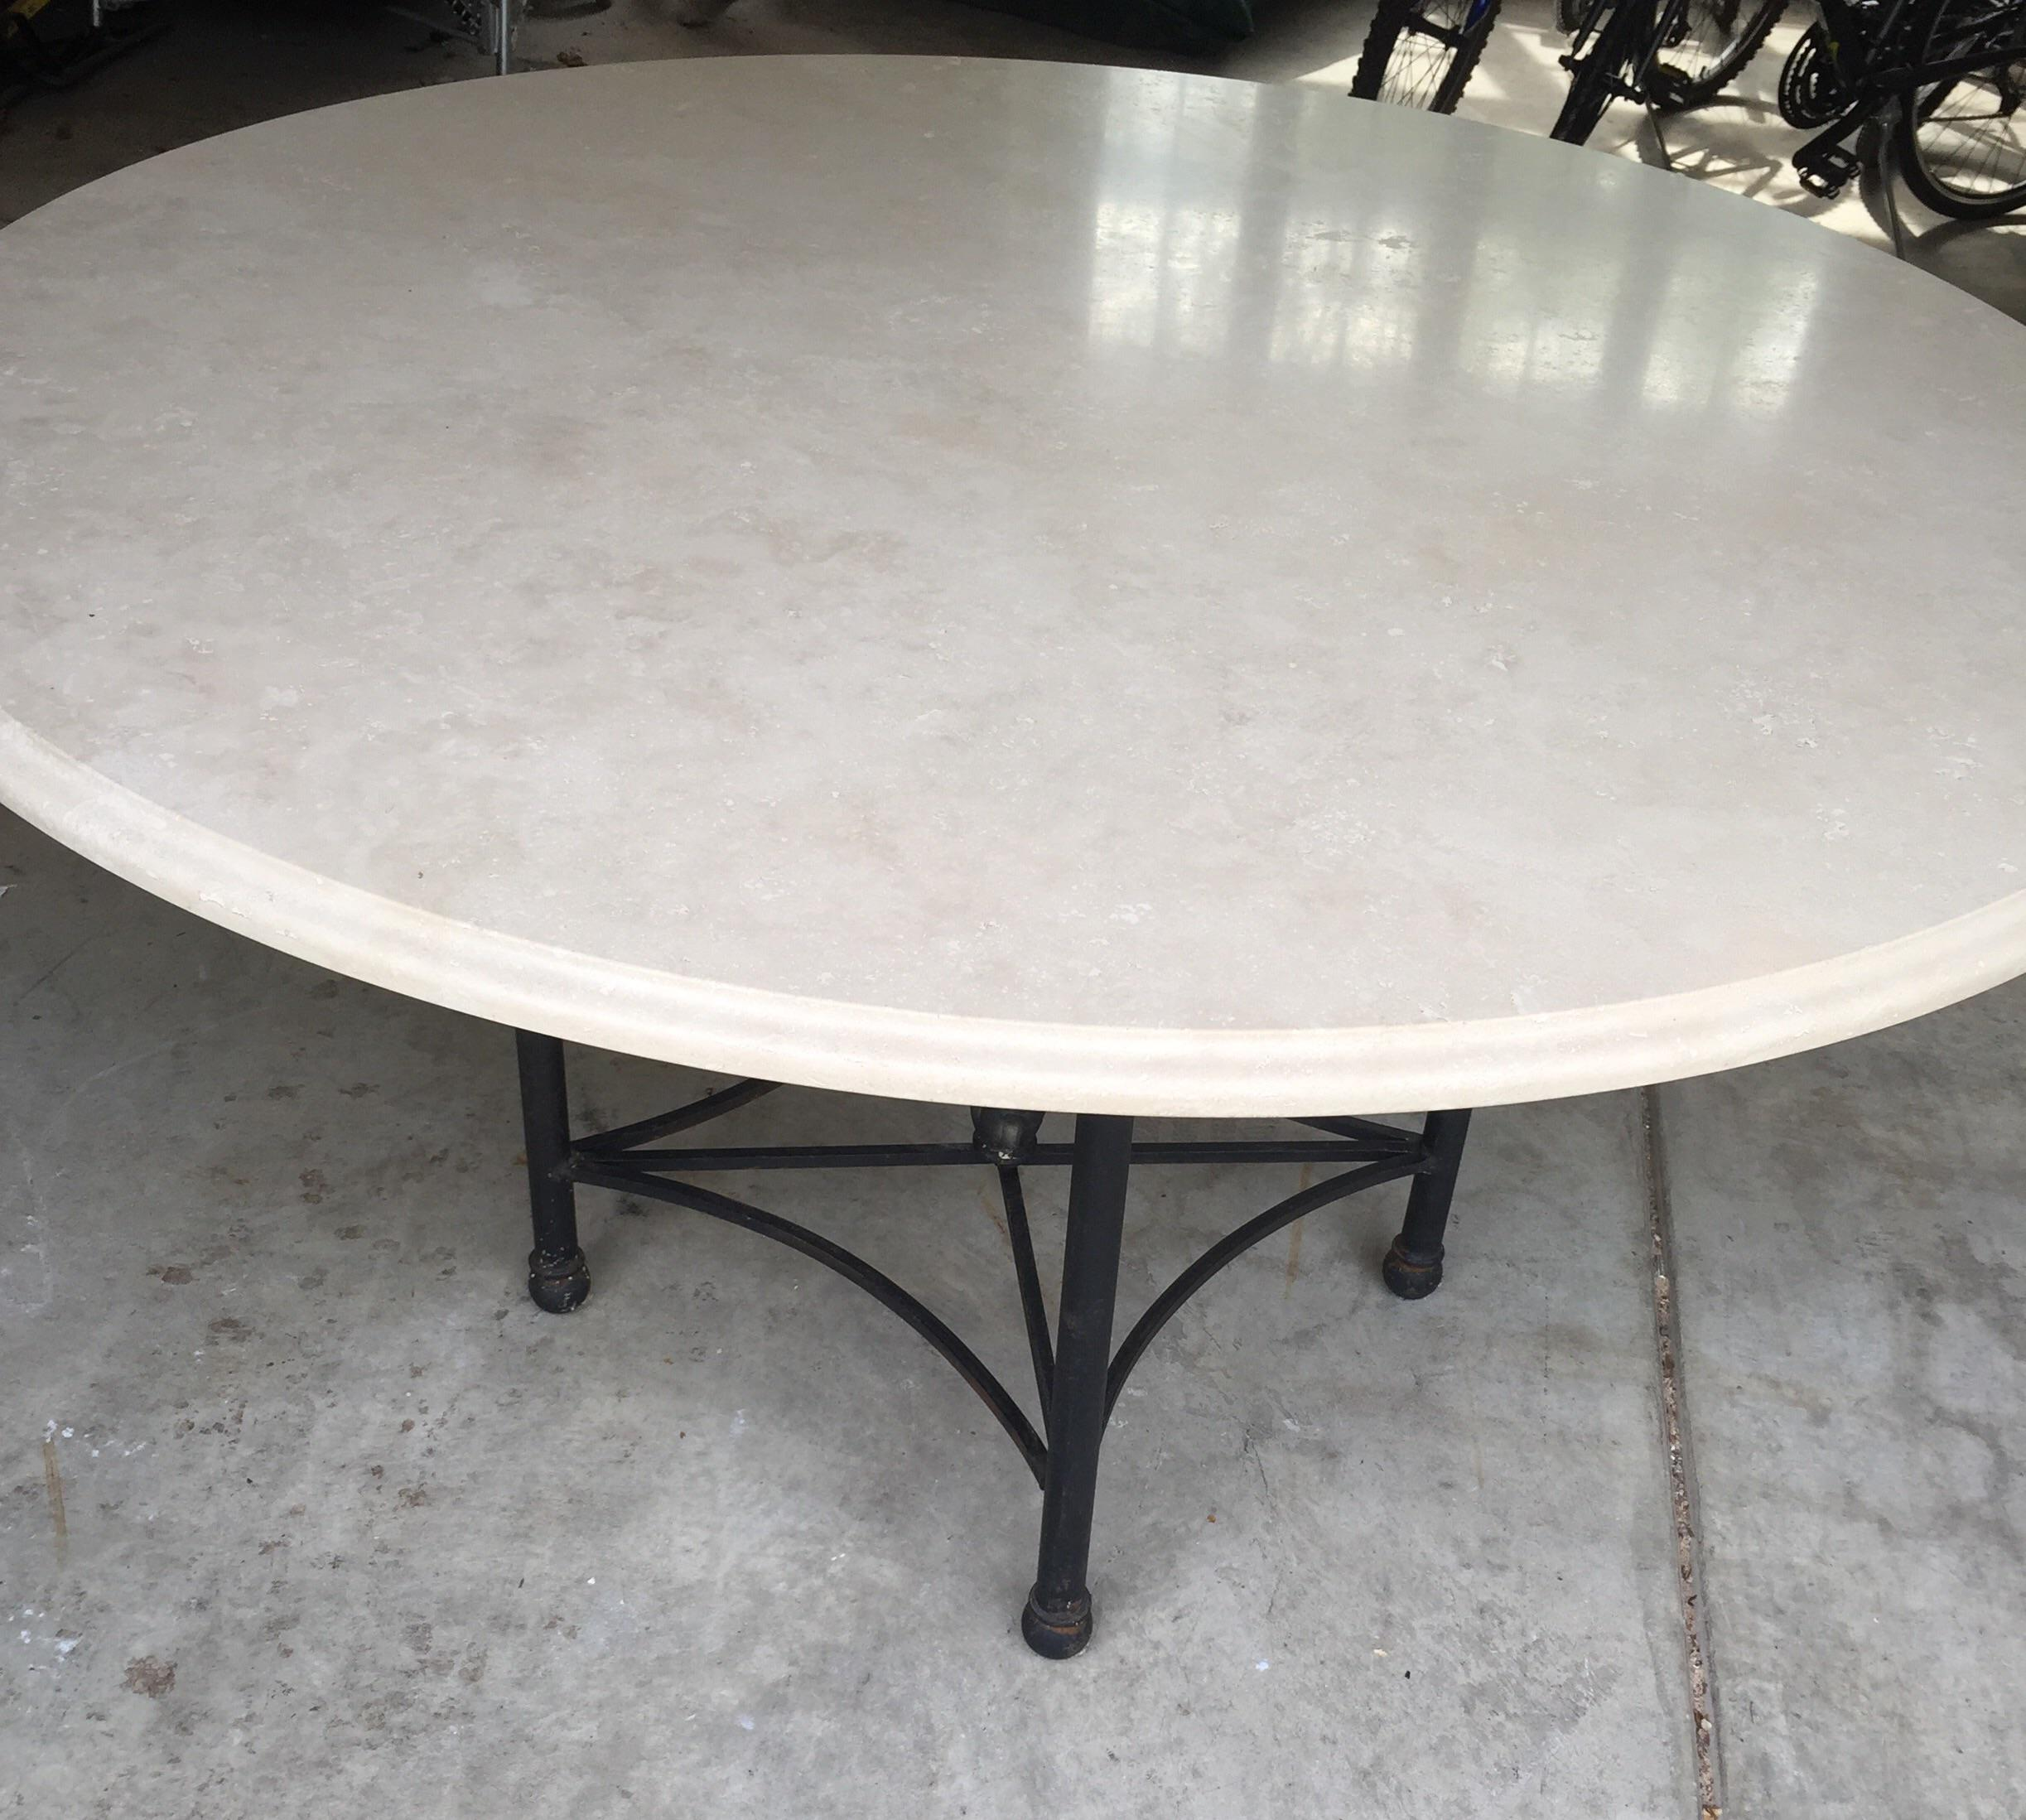 stone patio table. Round Travertine Stone Patio Table - Image 3 Of 5 D